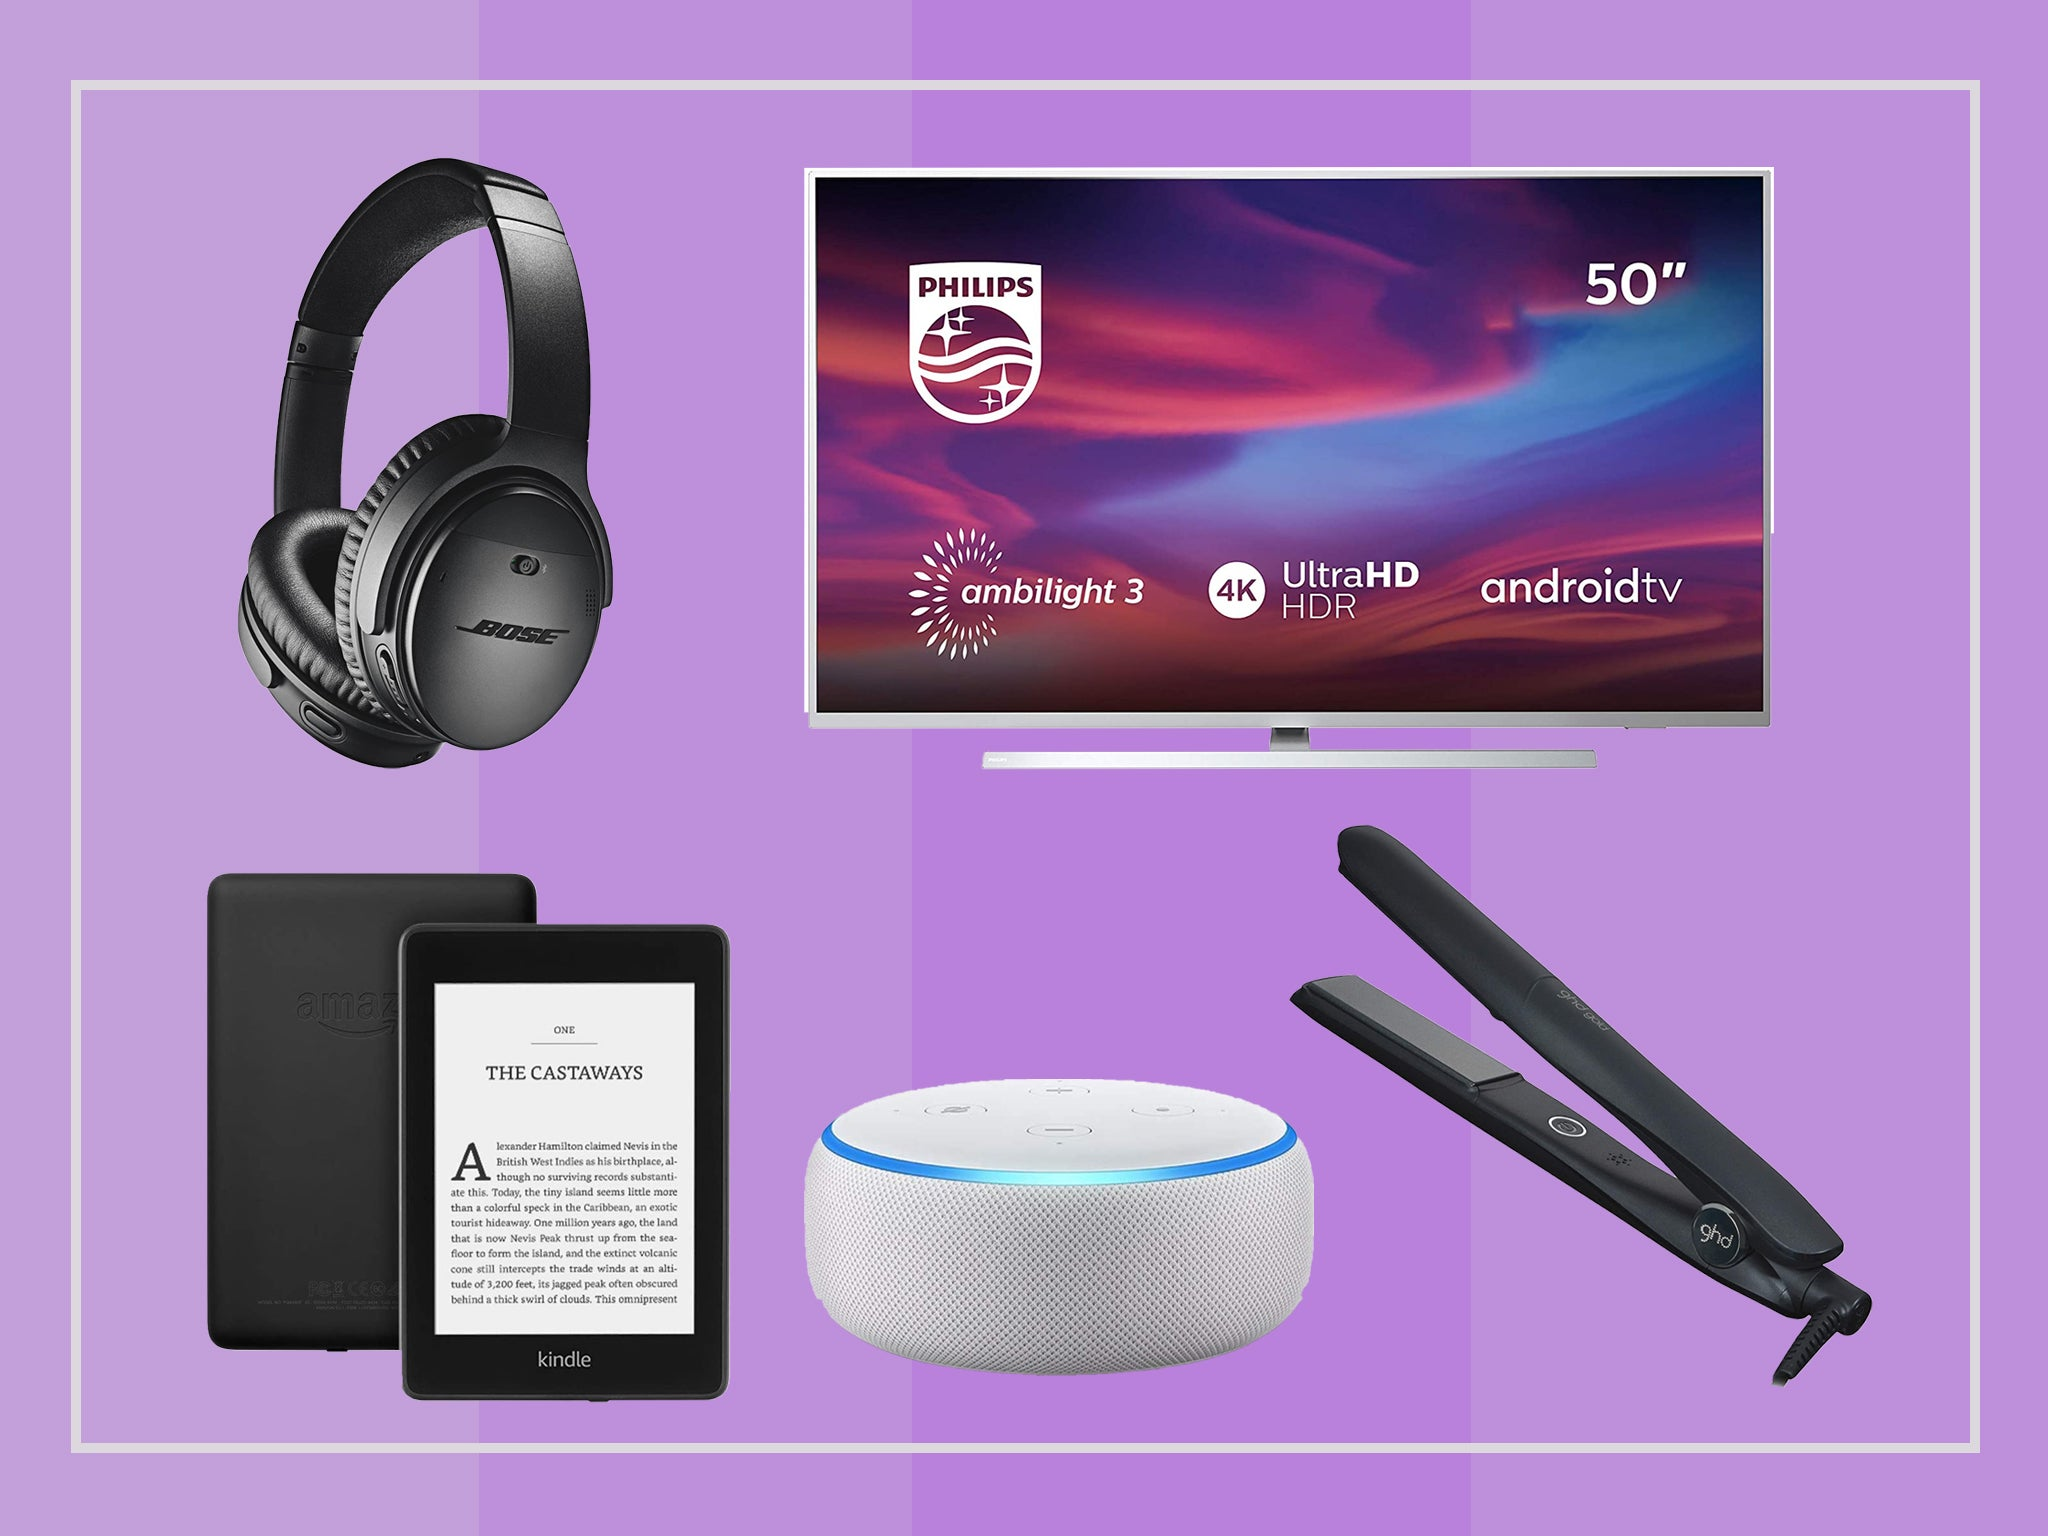 Best Amazon Black Friday Deals Uk Echo Show Nintendo Switch Sonos And More The Independent